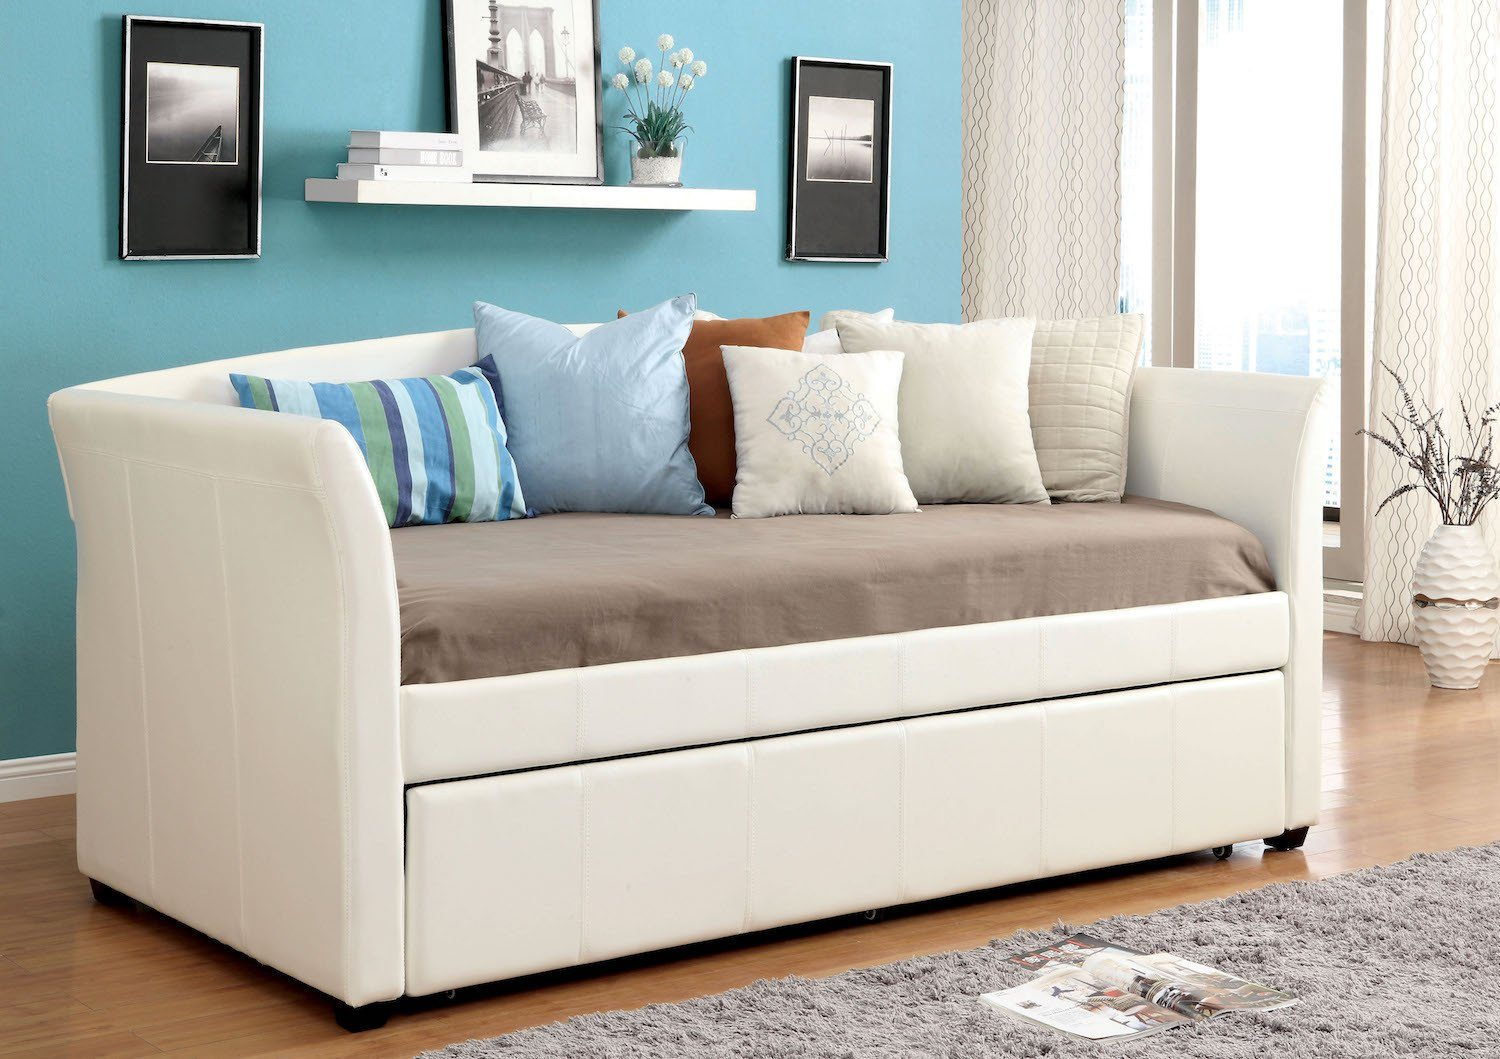 Lomen Leatherette Day Bed White Furniture Enitial Lab